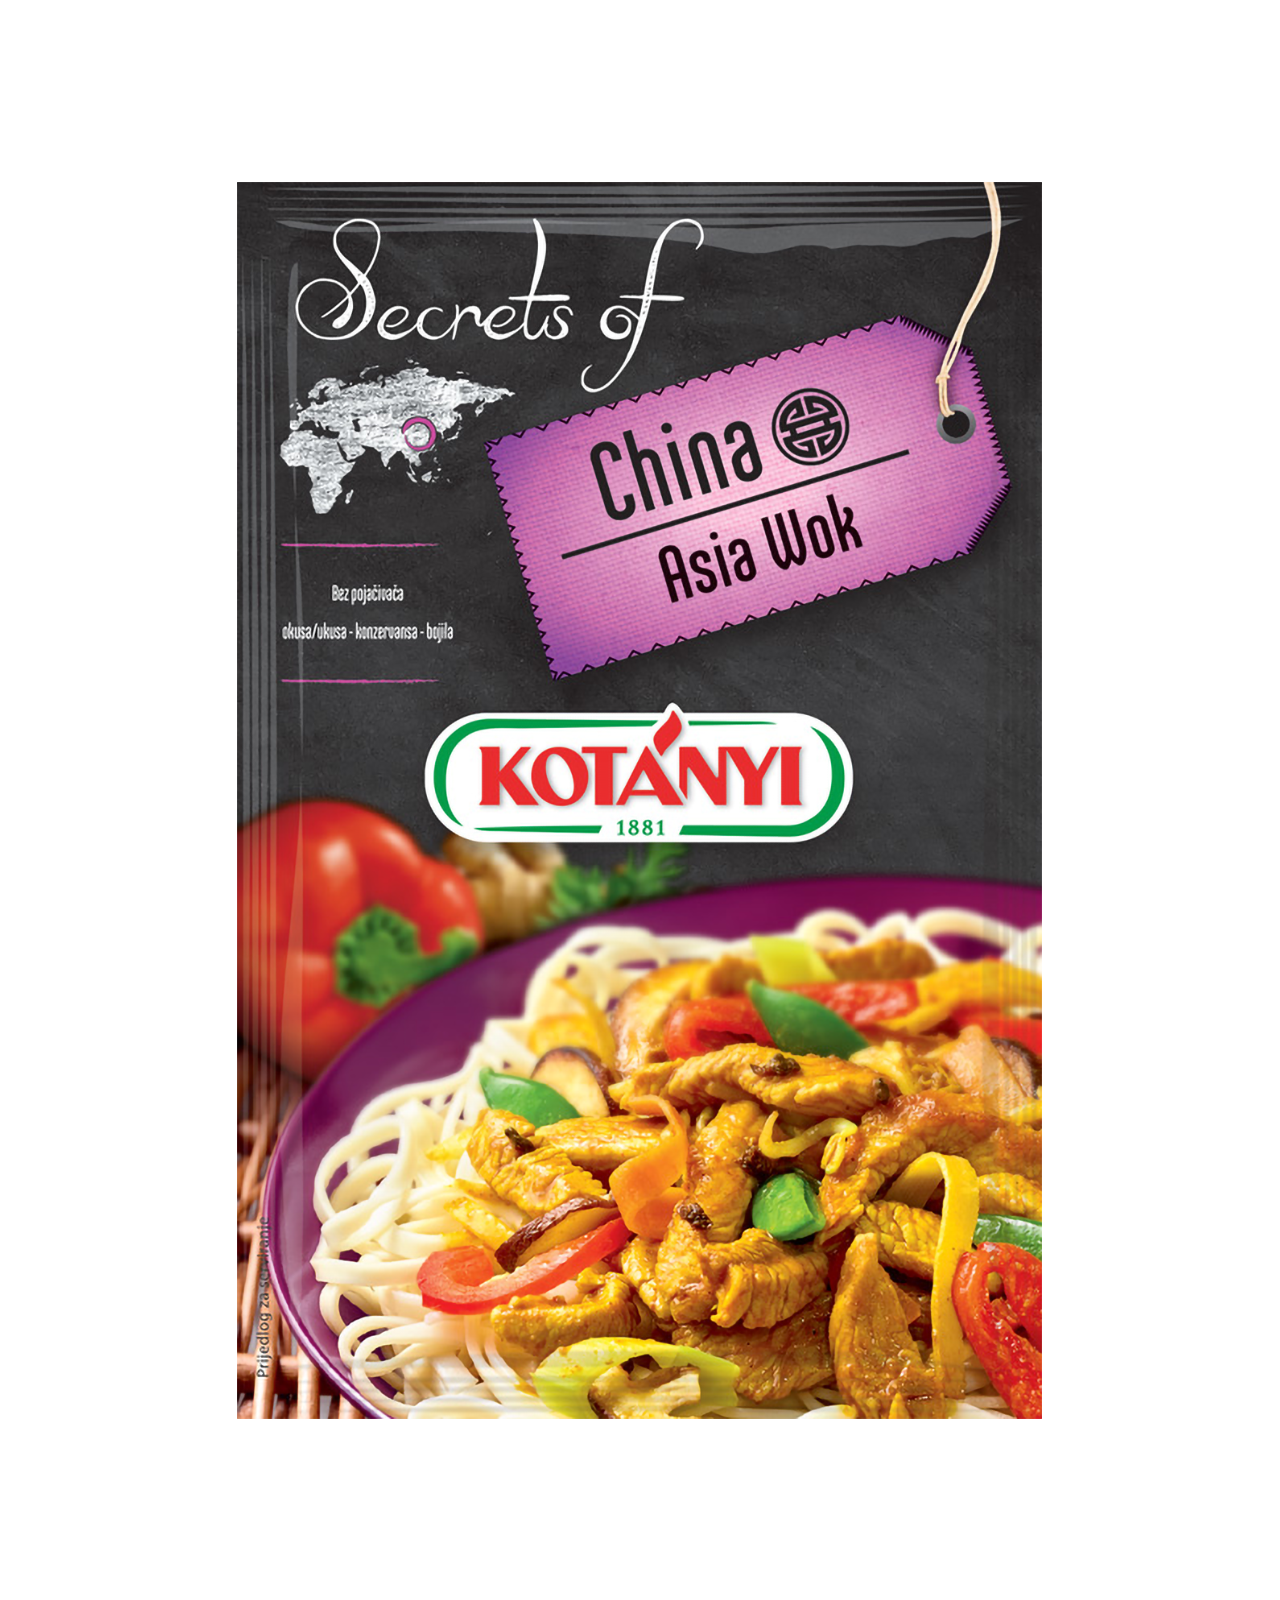 344308 Kotany Secrets Of China Asia Wok B2c Pouch